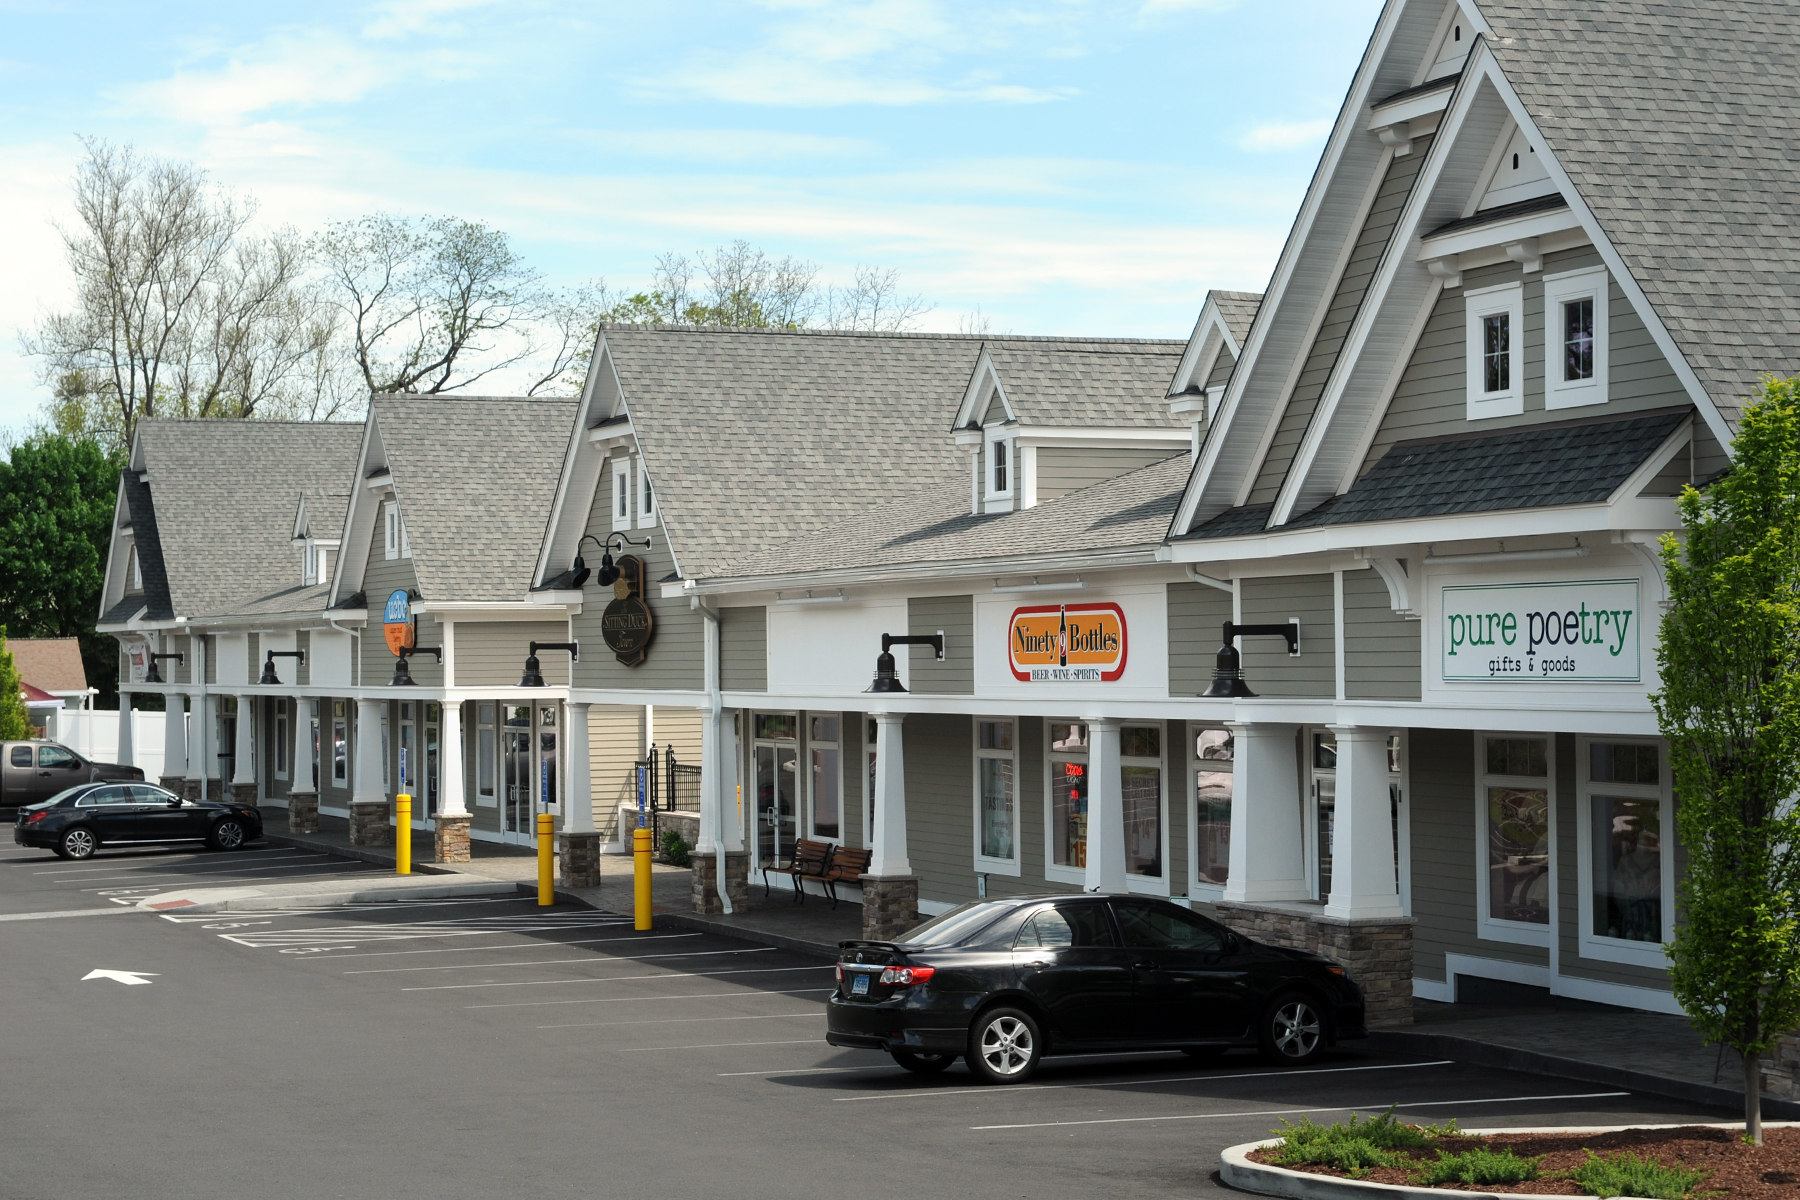 Shopping plazas bring dozens of new businesses to Trumbull